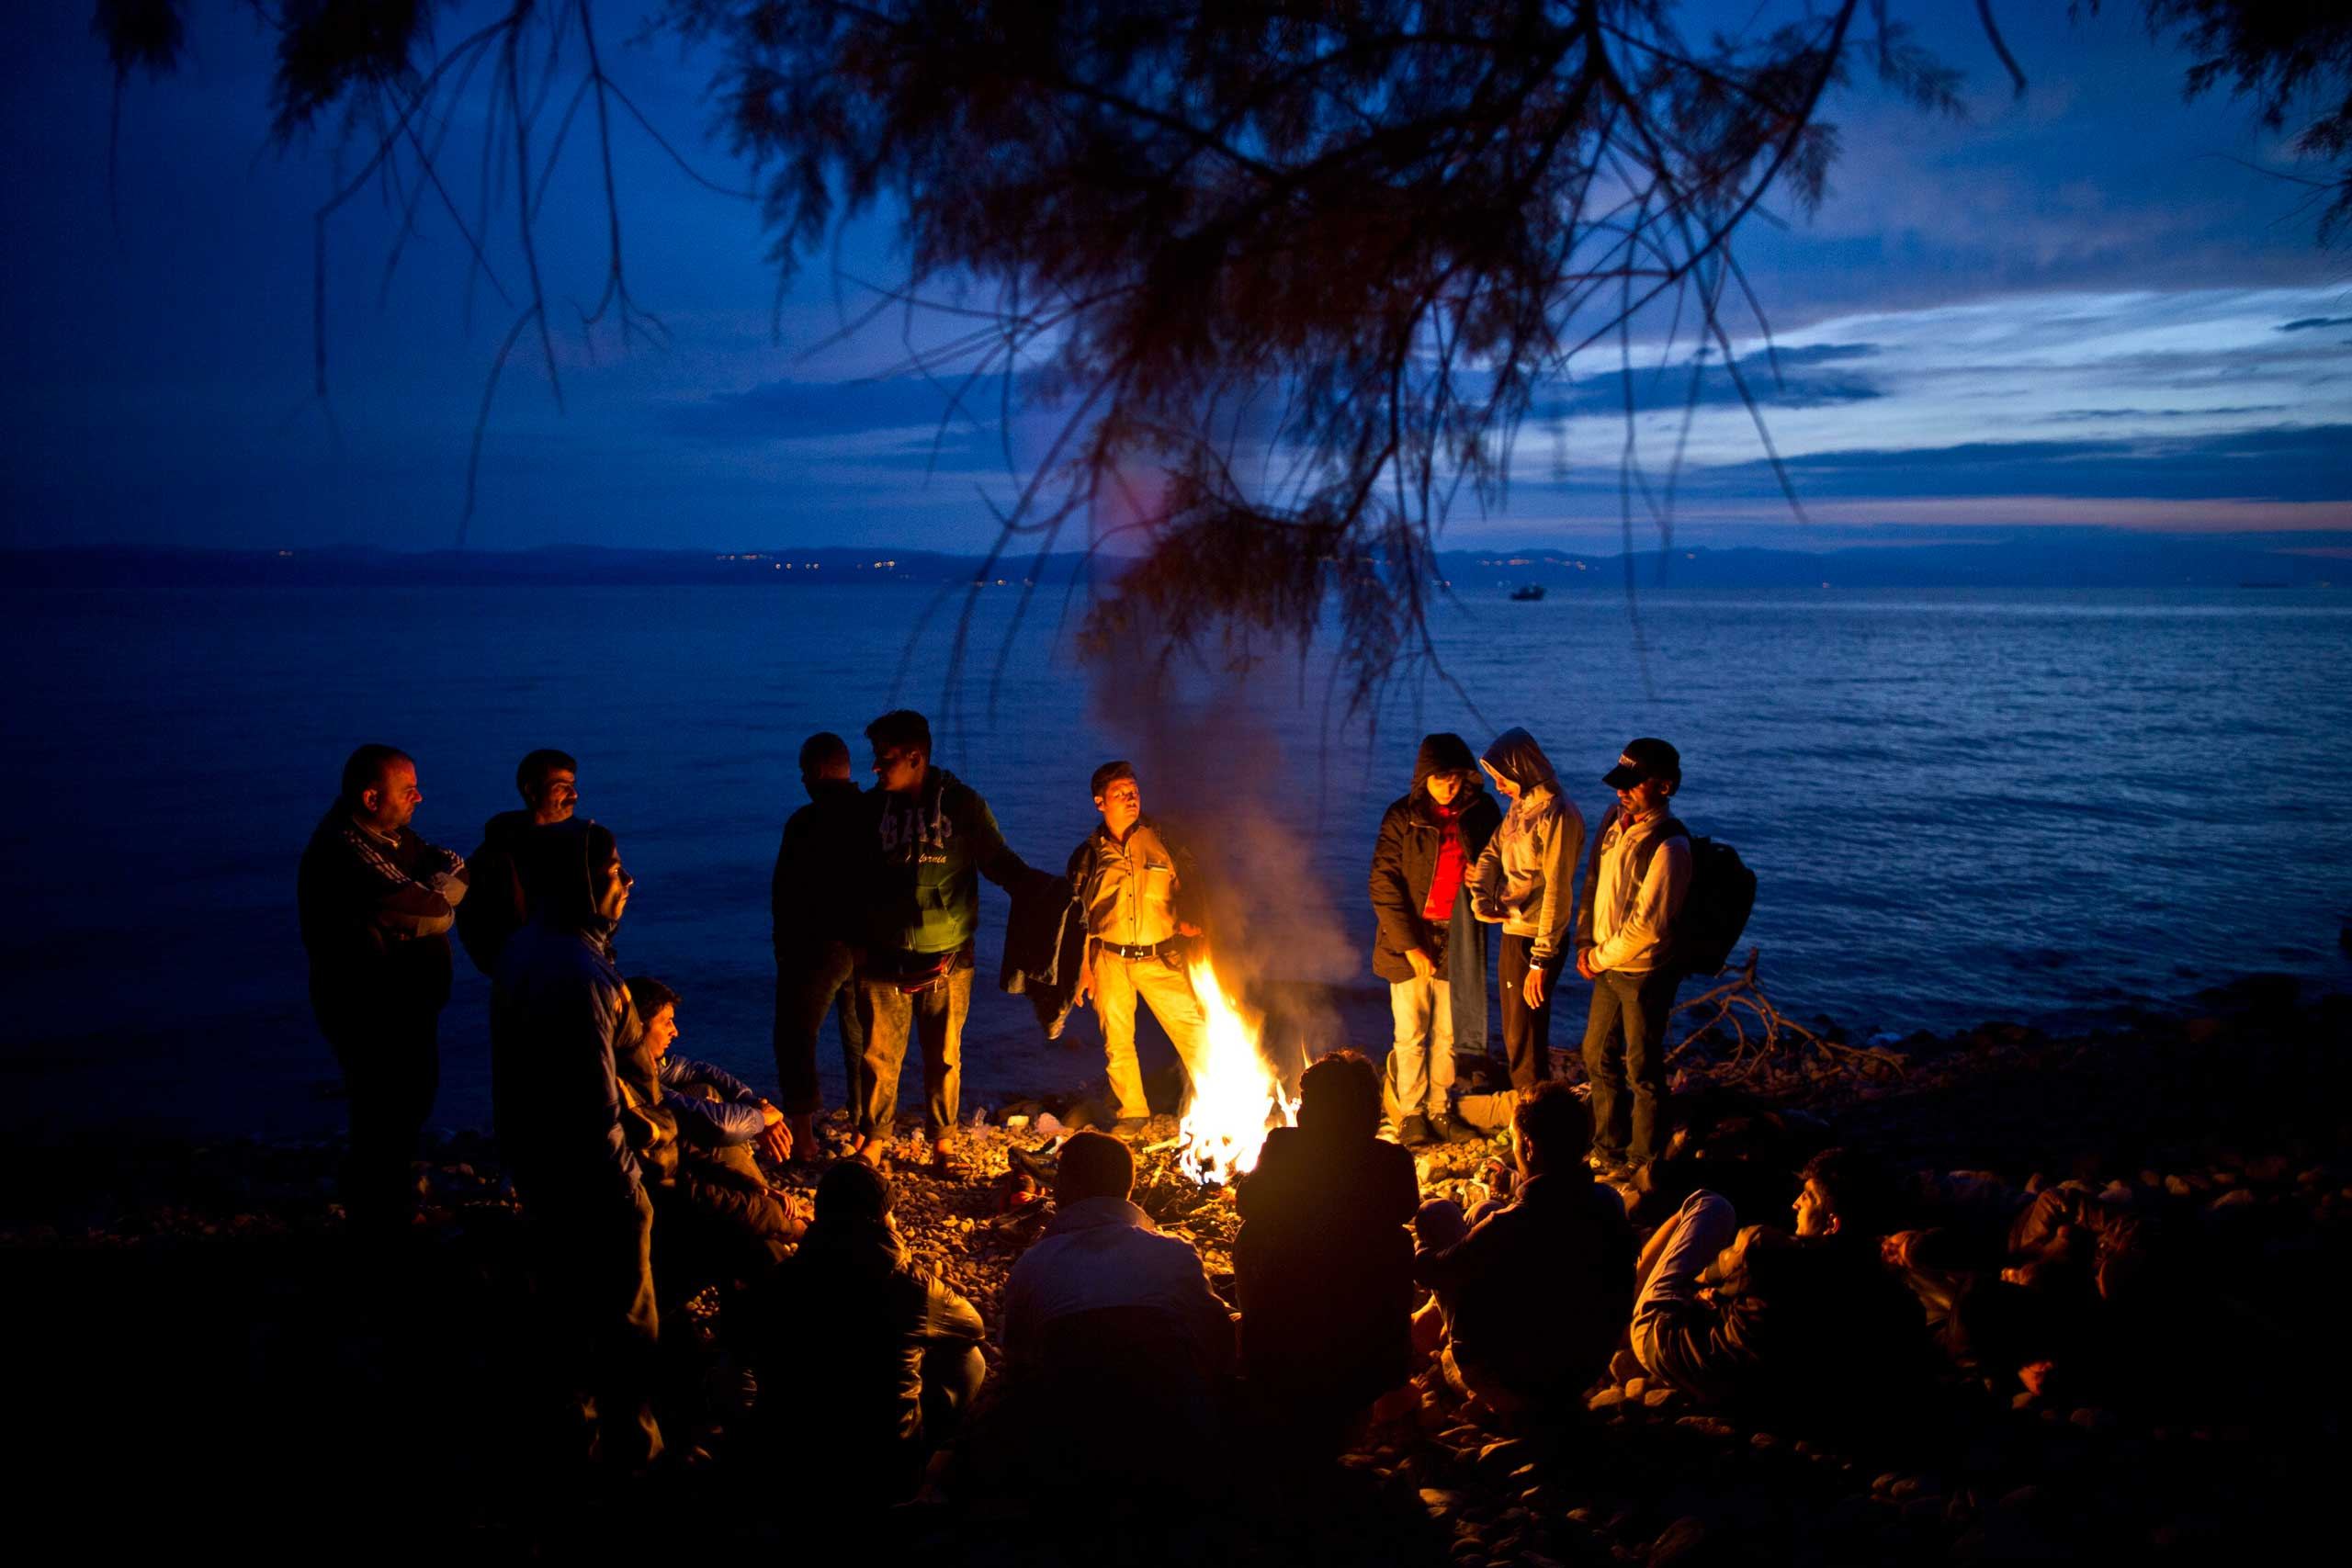 Syrian and Afghan refugees warm themselves and dry their clothes around a fire after arriving on a dinghy from the Turkish coast to the northeastern Greek island of Lesbos, early on Oct. 7, 2015.